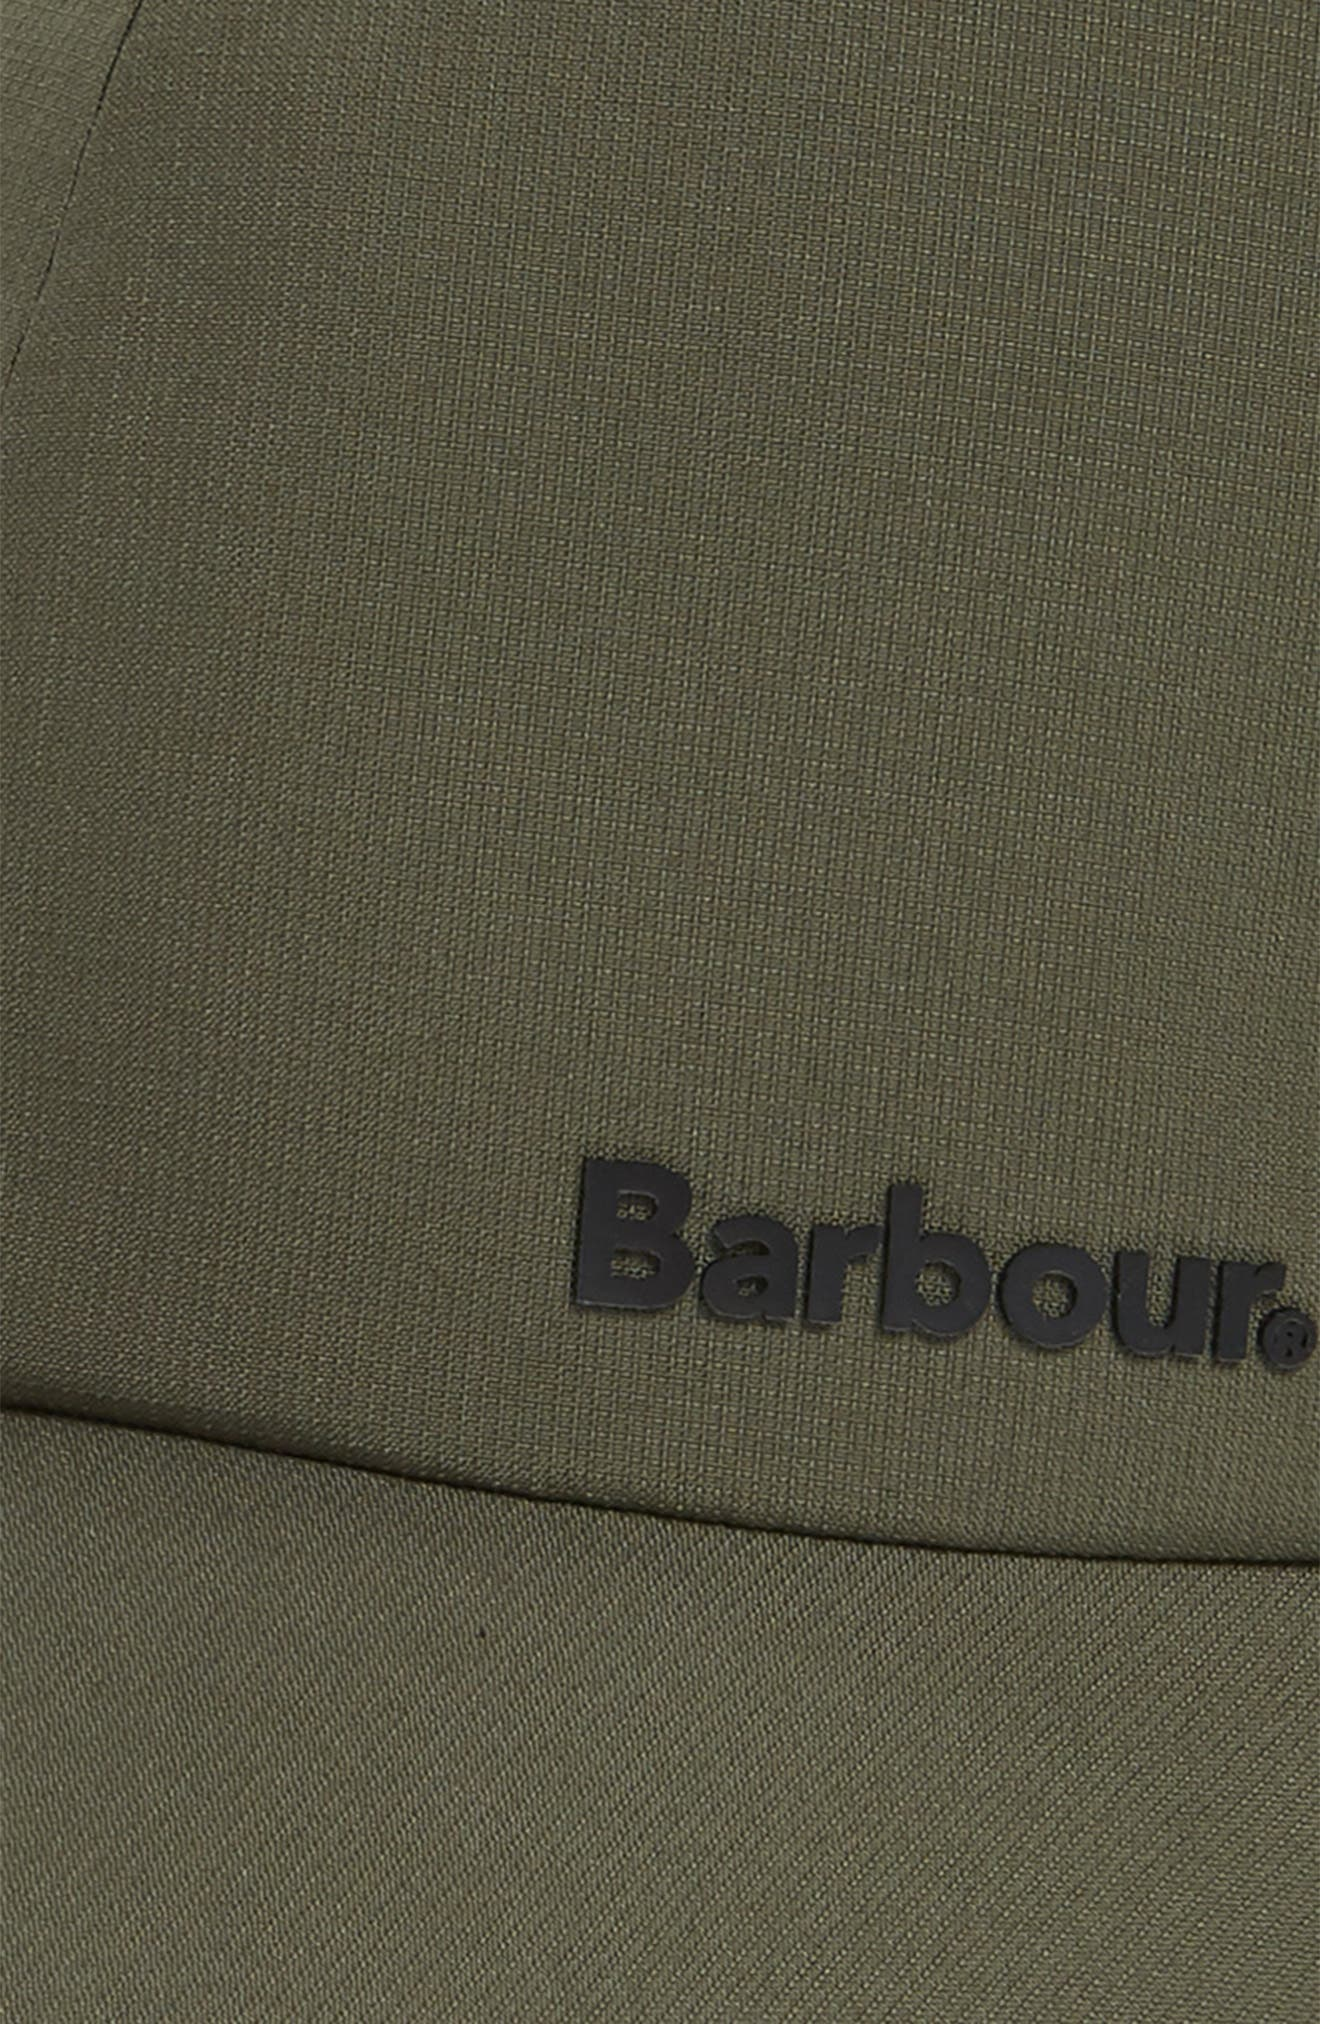 Alternate Image 3  - Barbour Dee Waterproof Ball Cap